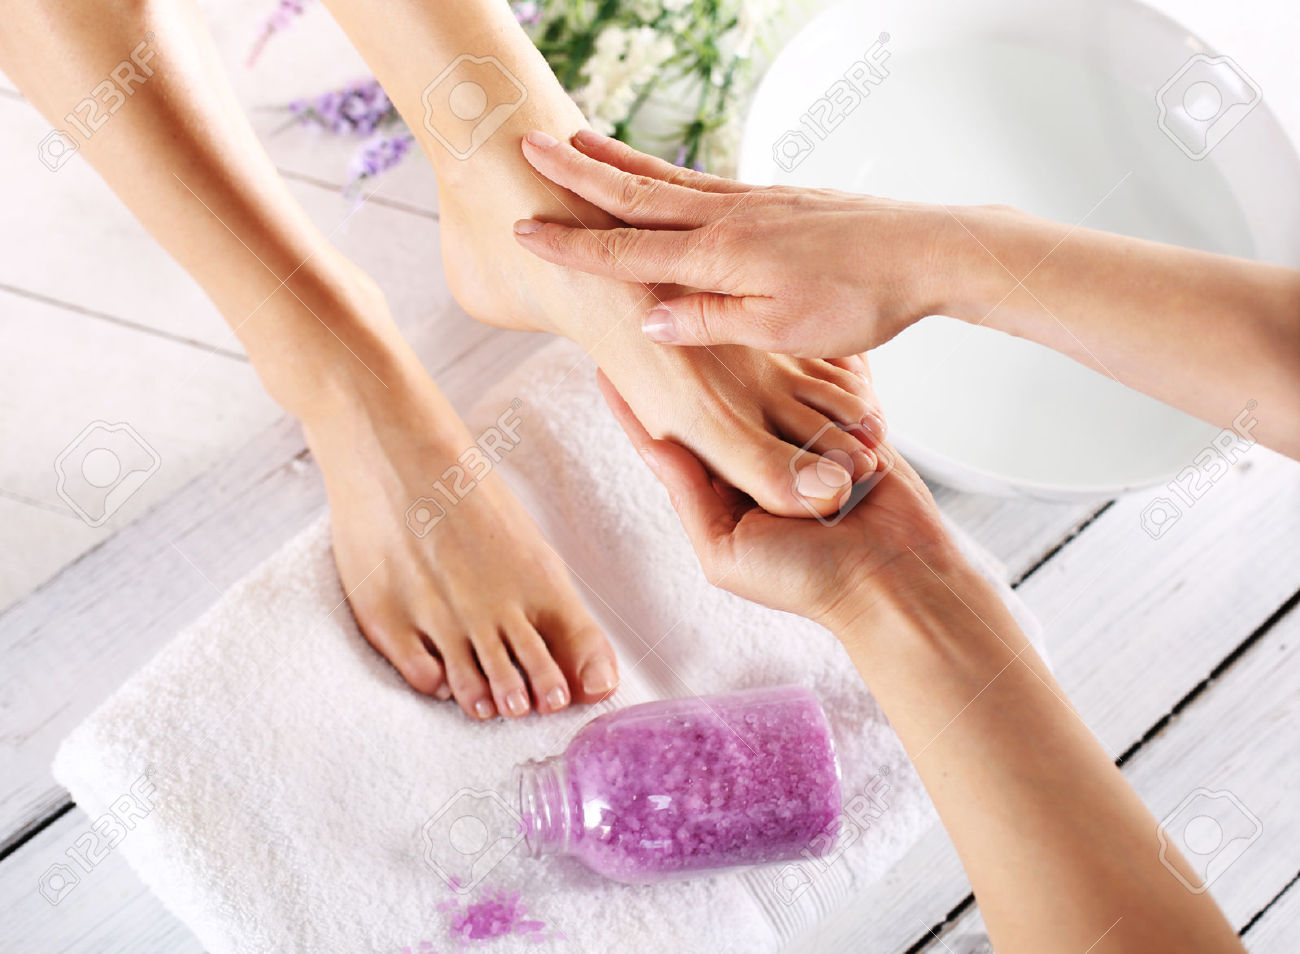 Salon Services Foot Spa